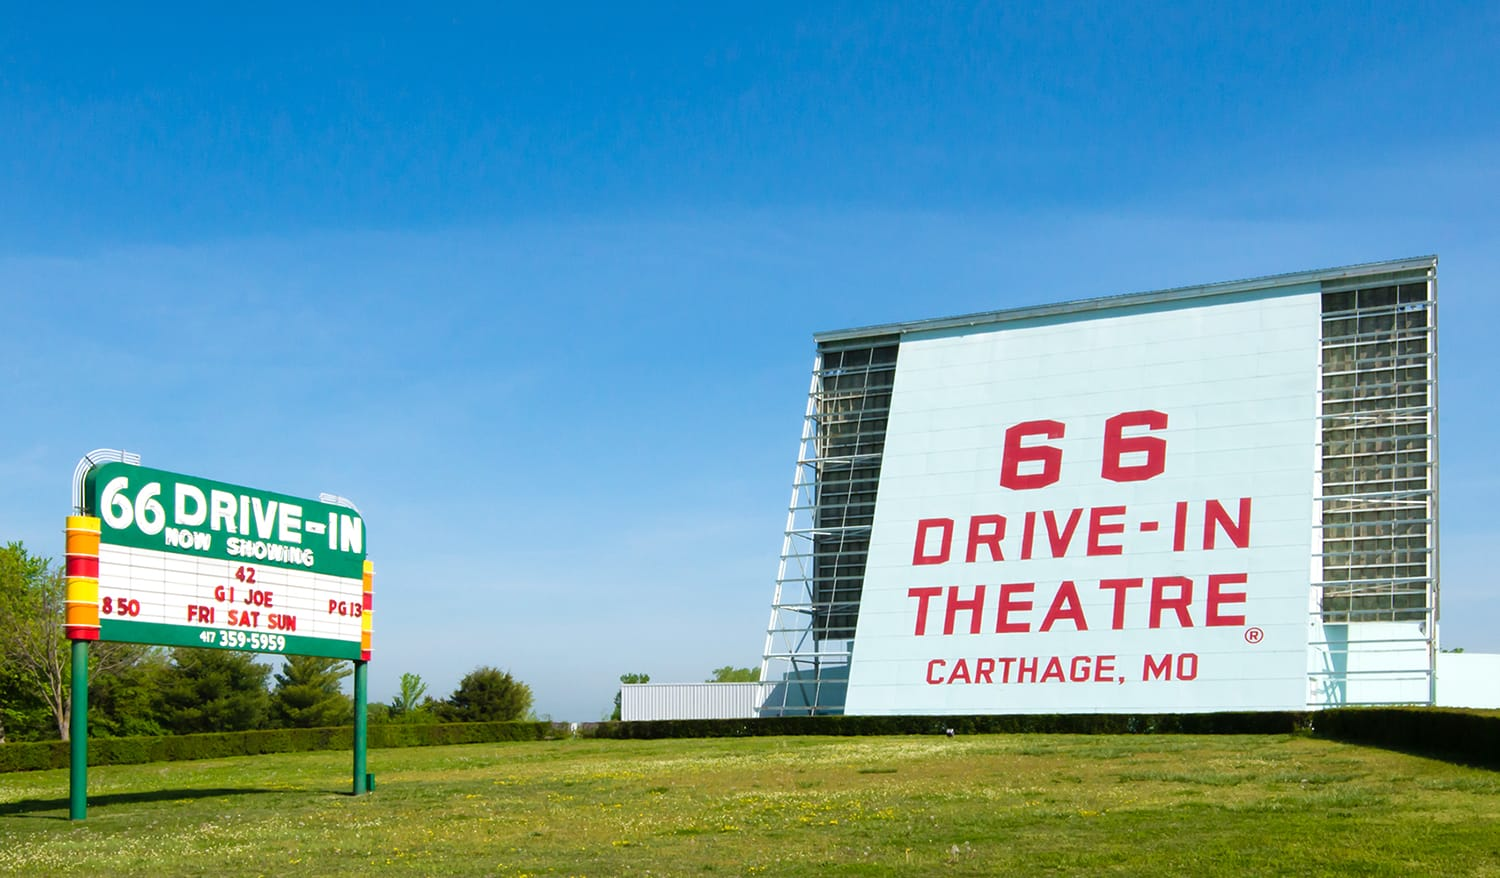 Historic 66 Drive-in Theatre and neon sign, on Route 66 in Carthage, Missouri